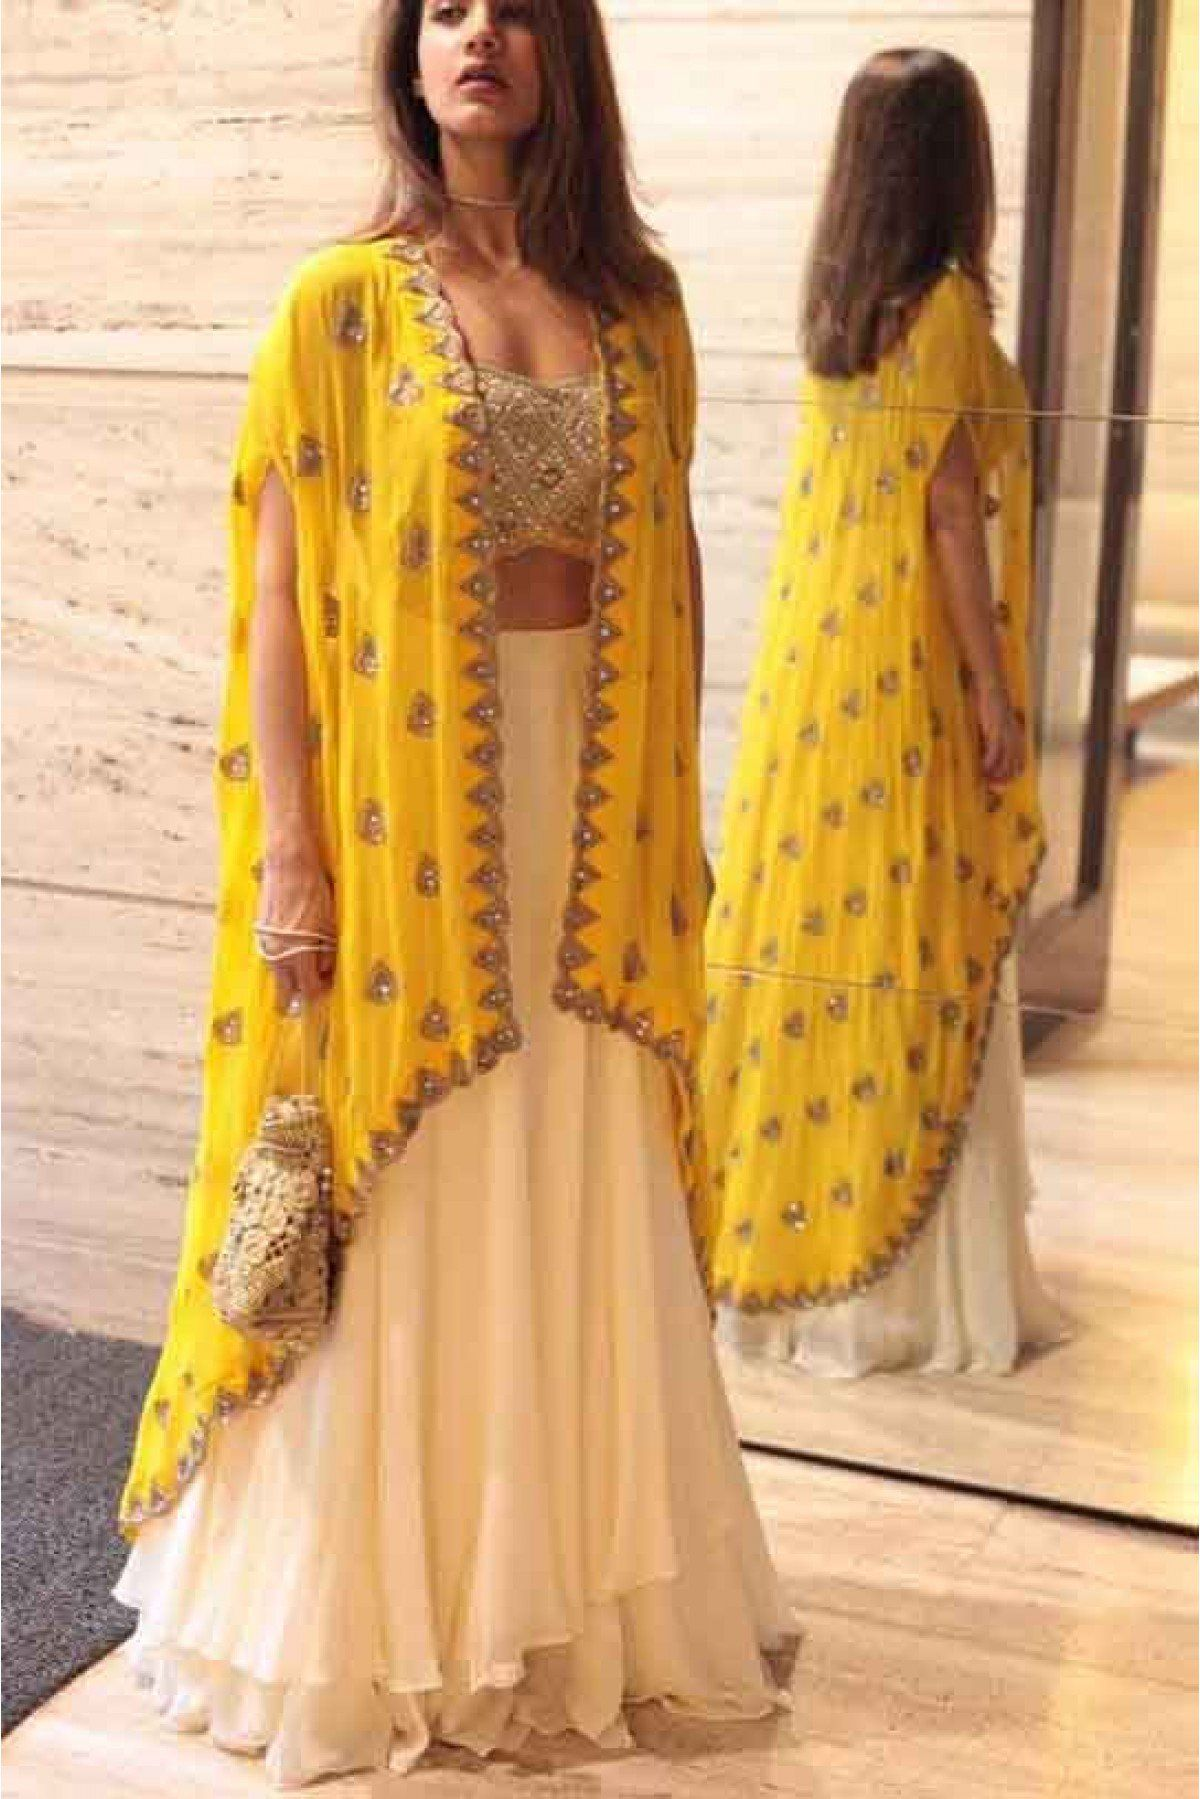 b38dbdab2 Buy Best price latest designer Georgette Party Wear Lehenga Choli In Cream  and Yellow Colour online in india  Ninecolours.com! Cash on Delivery  Available!